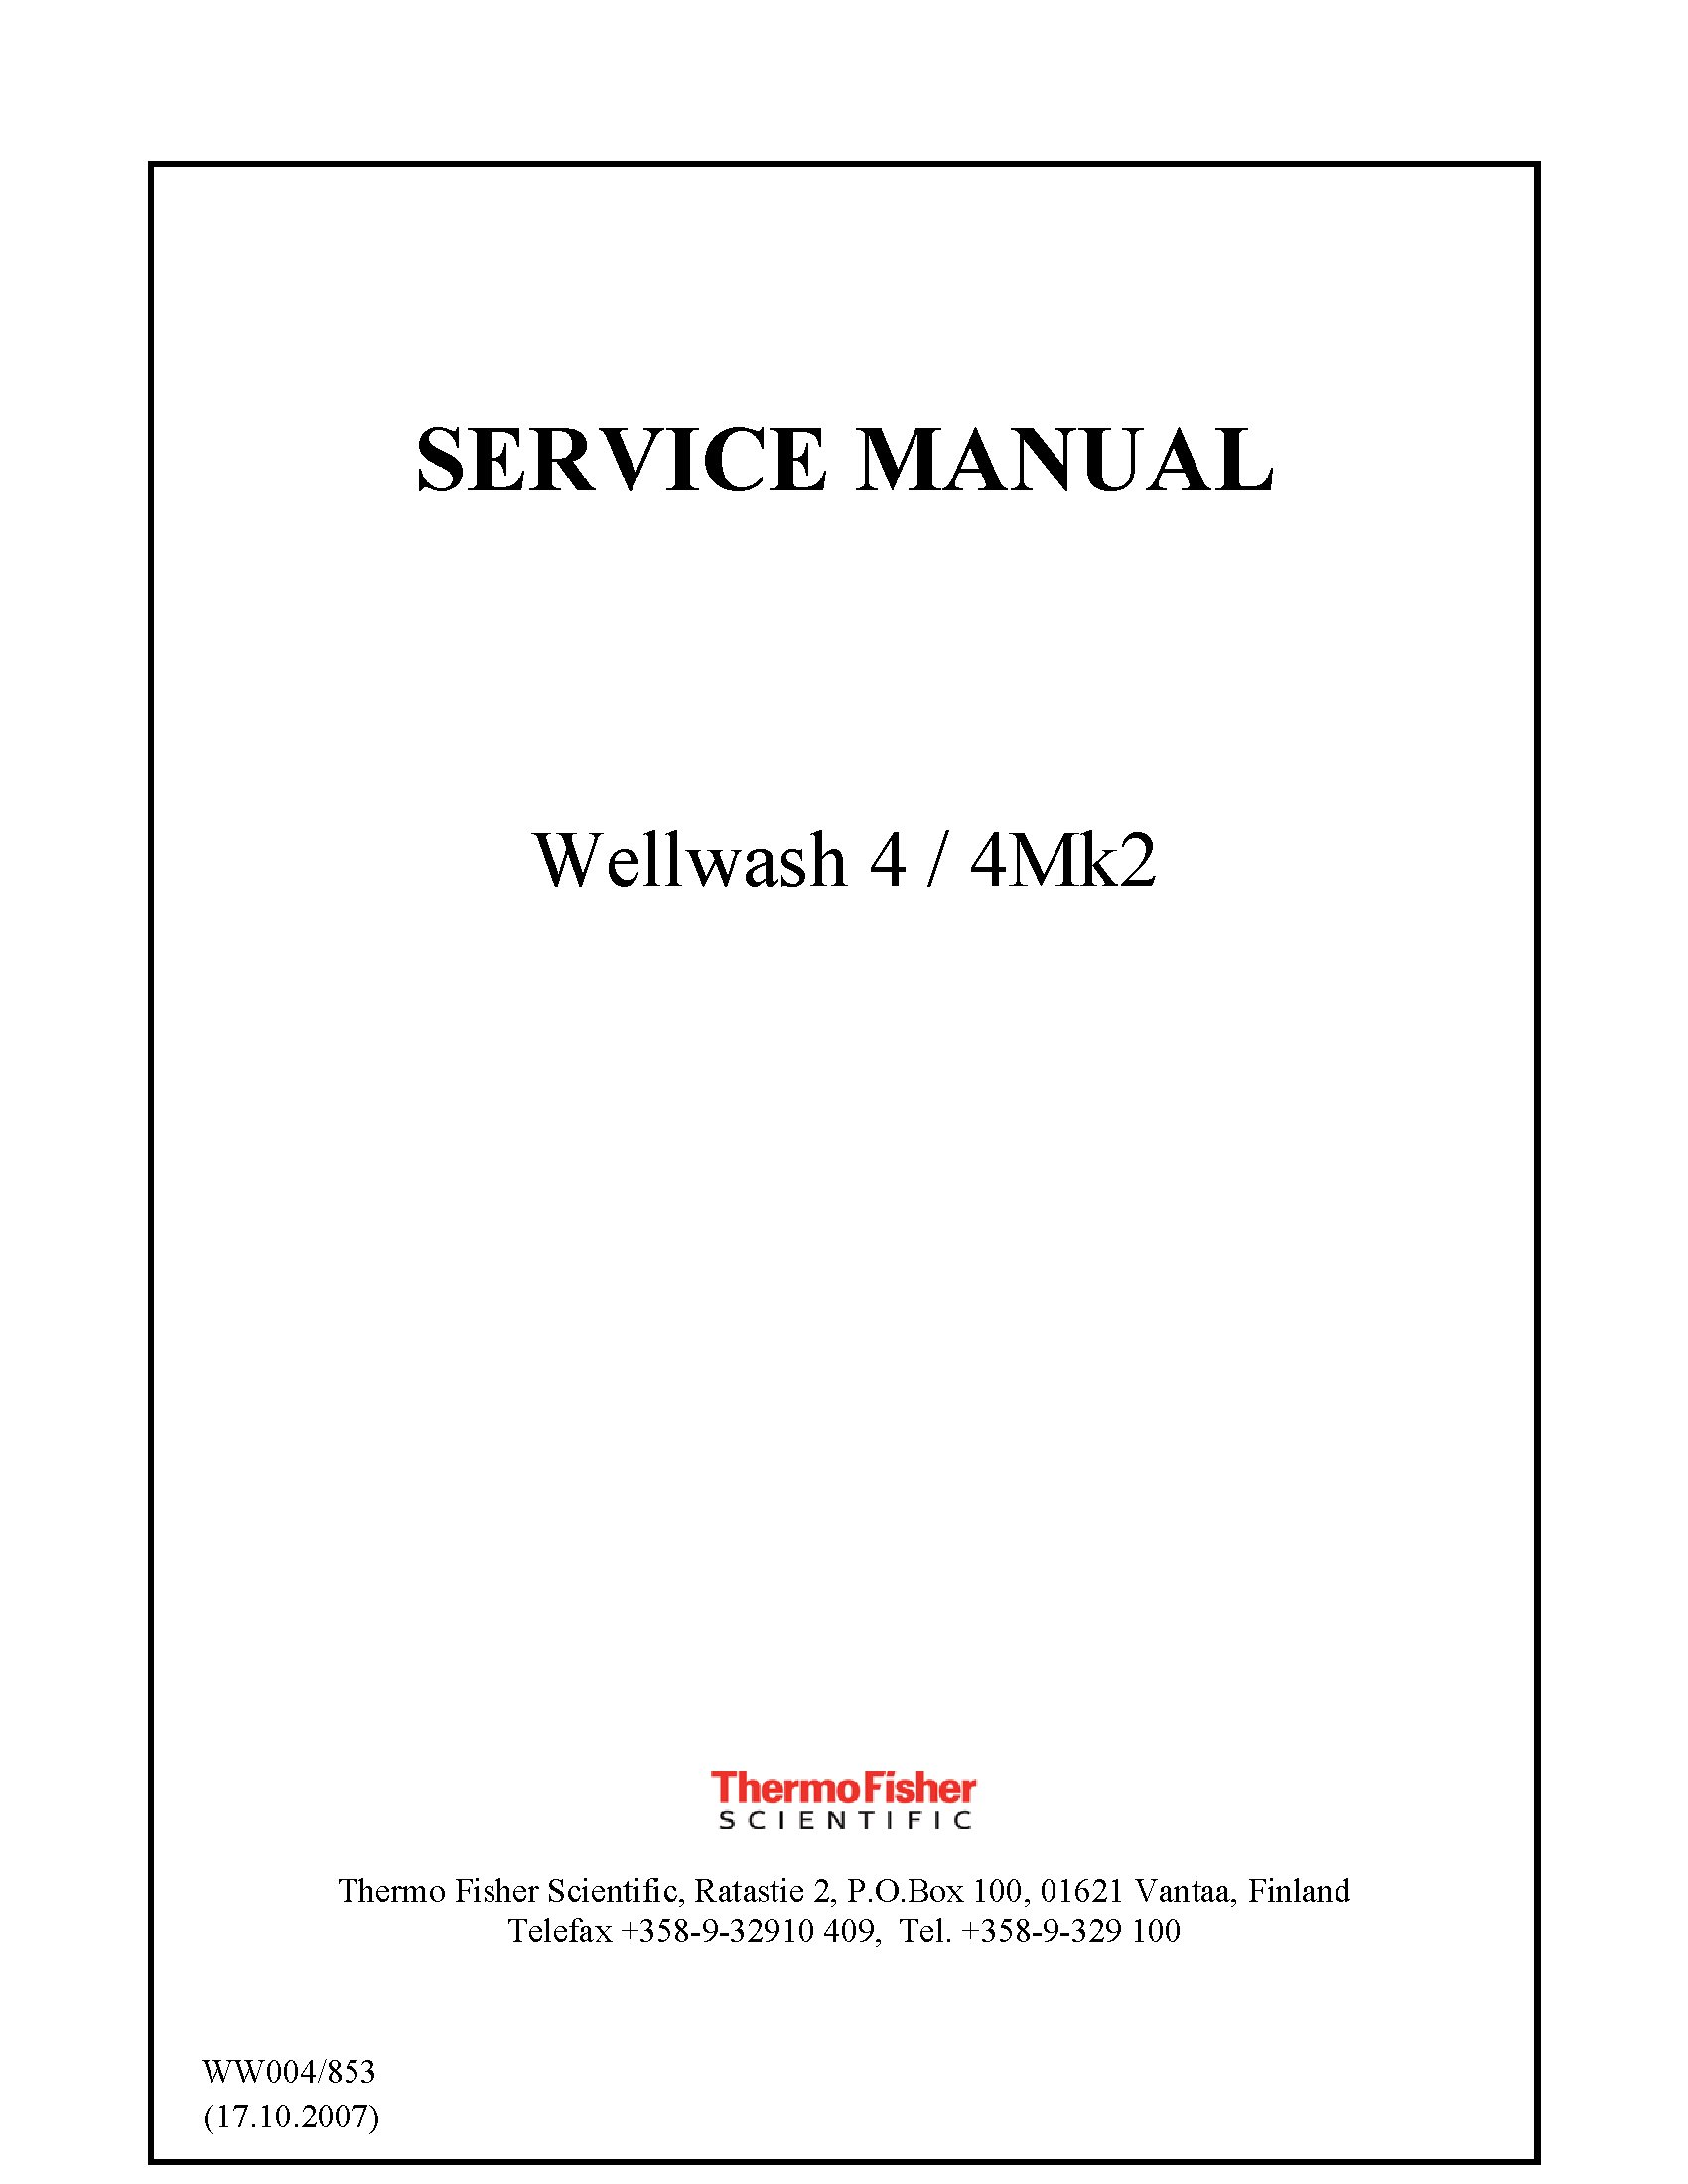 Thermofisher Wellwash 4 Service Manual Golden Biomed